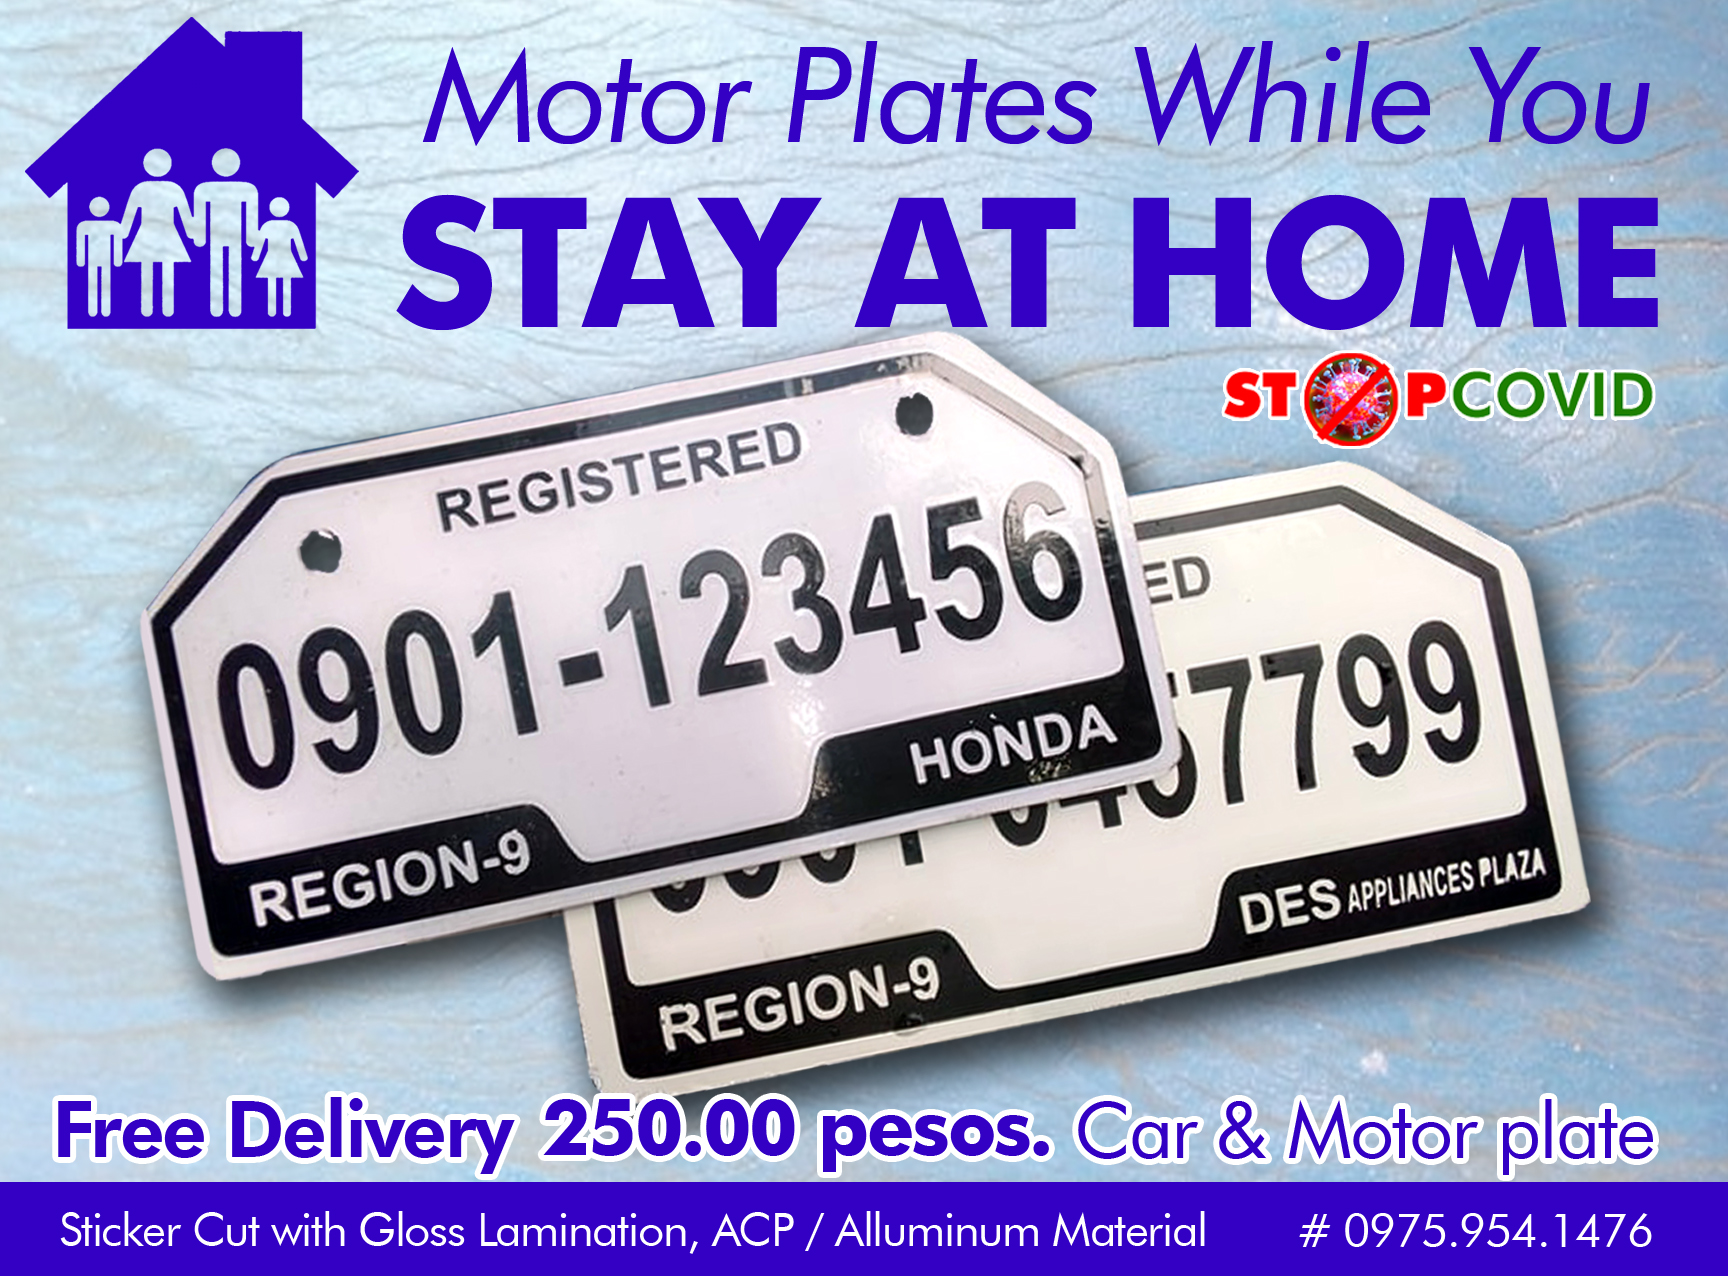 Motor plate free Delivery photo